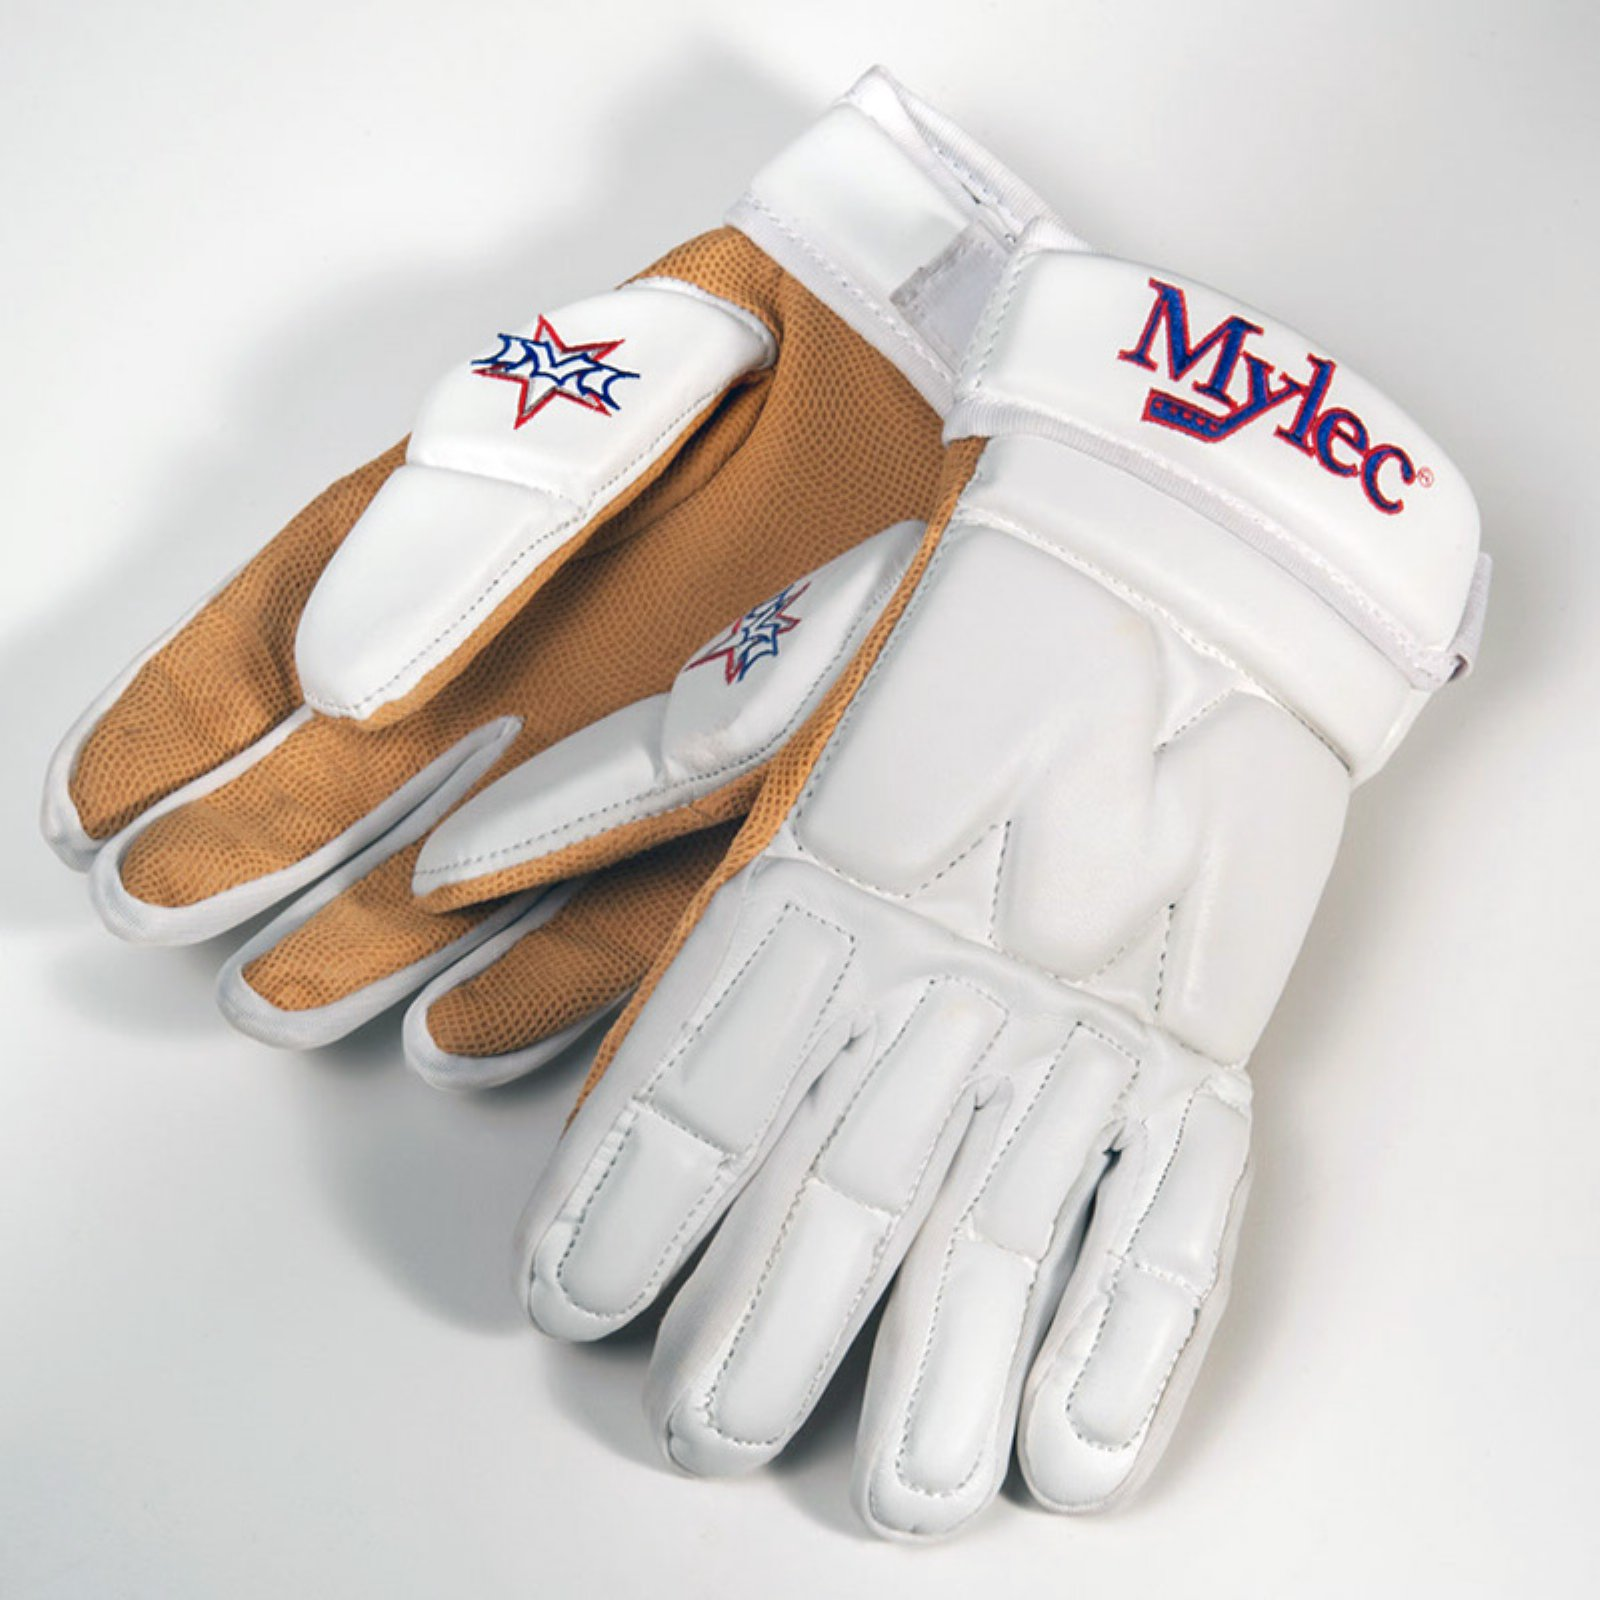 MYLEC Elite Street Dek Hockey Gloves - White